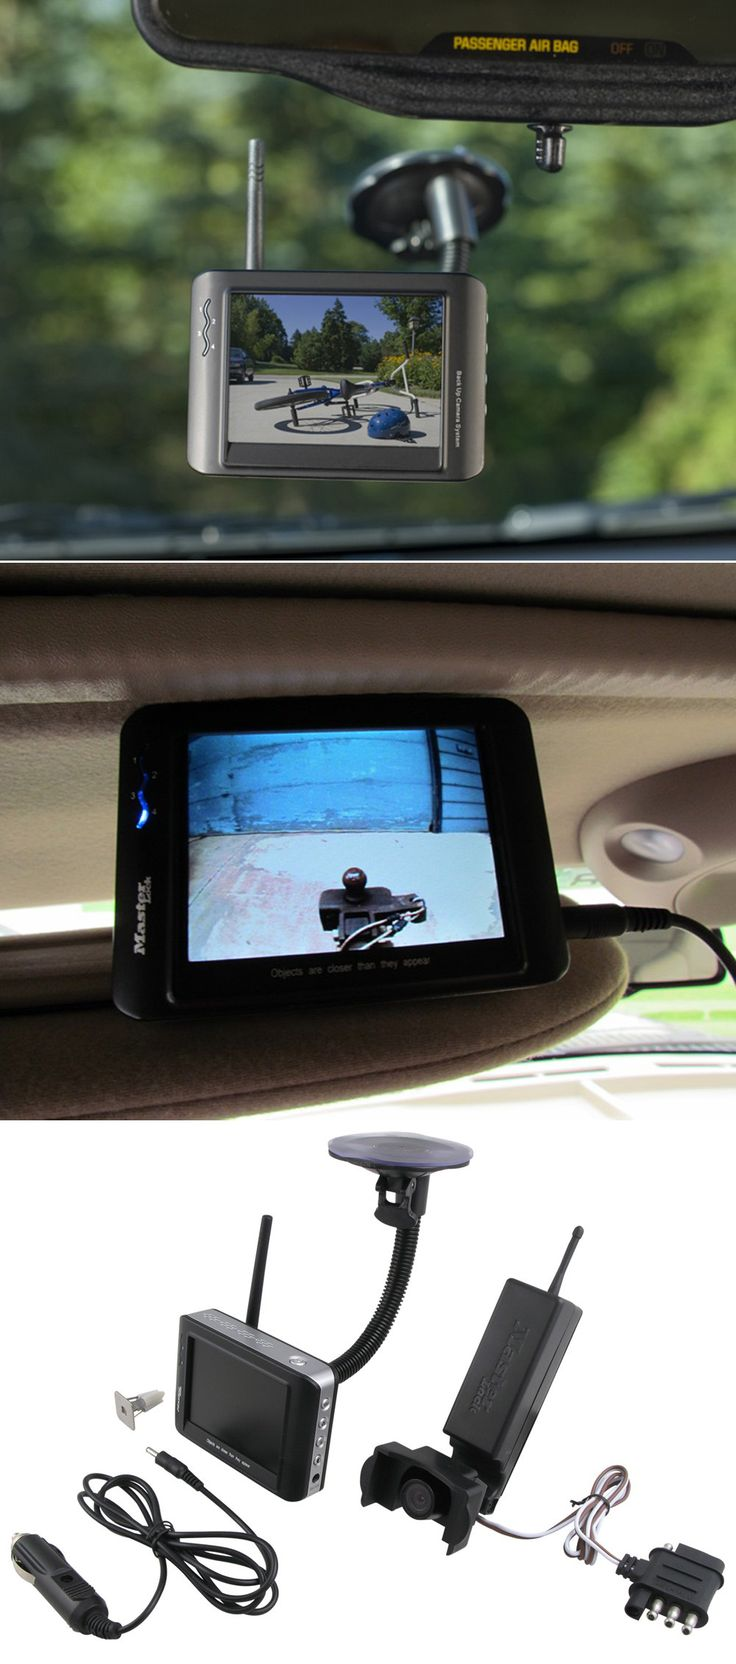 Master Lock Backup Camera for lining up the hitch or even just backing up. A unique gift idea for dad's (hint hint: Father's Day!) who love their truck!